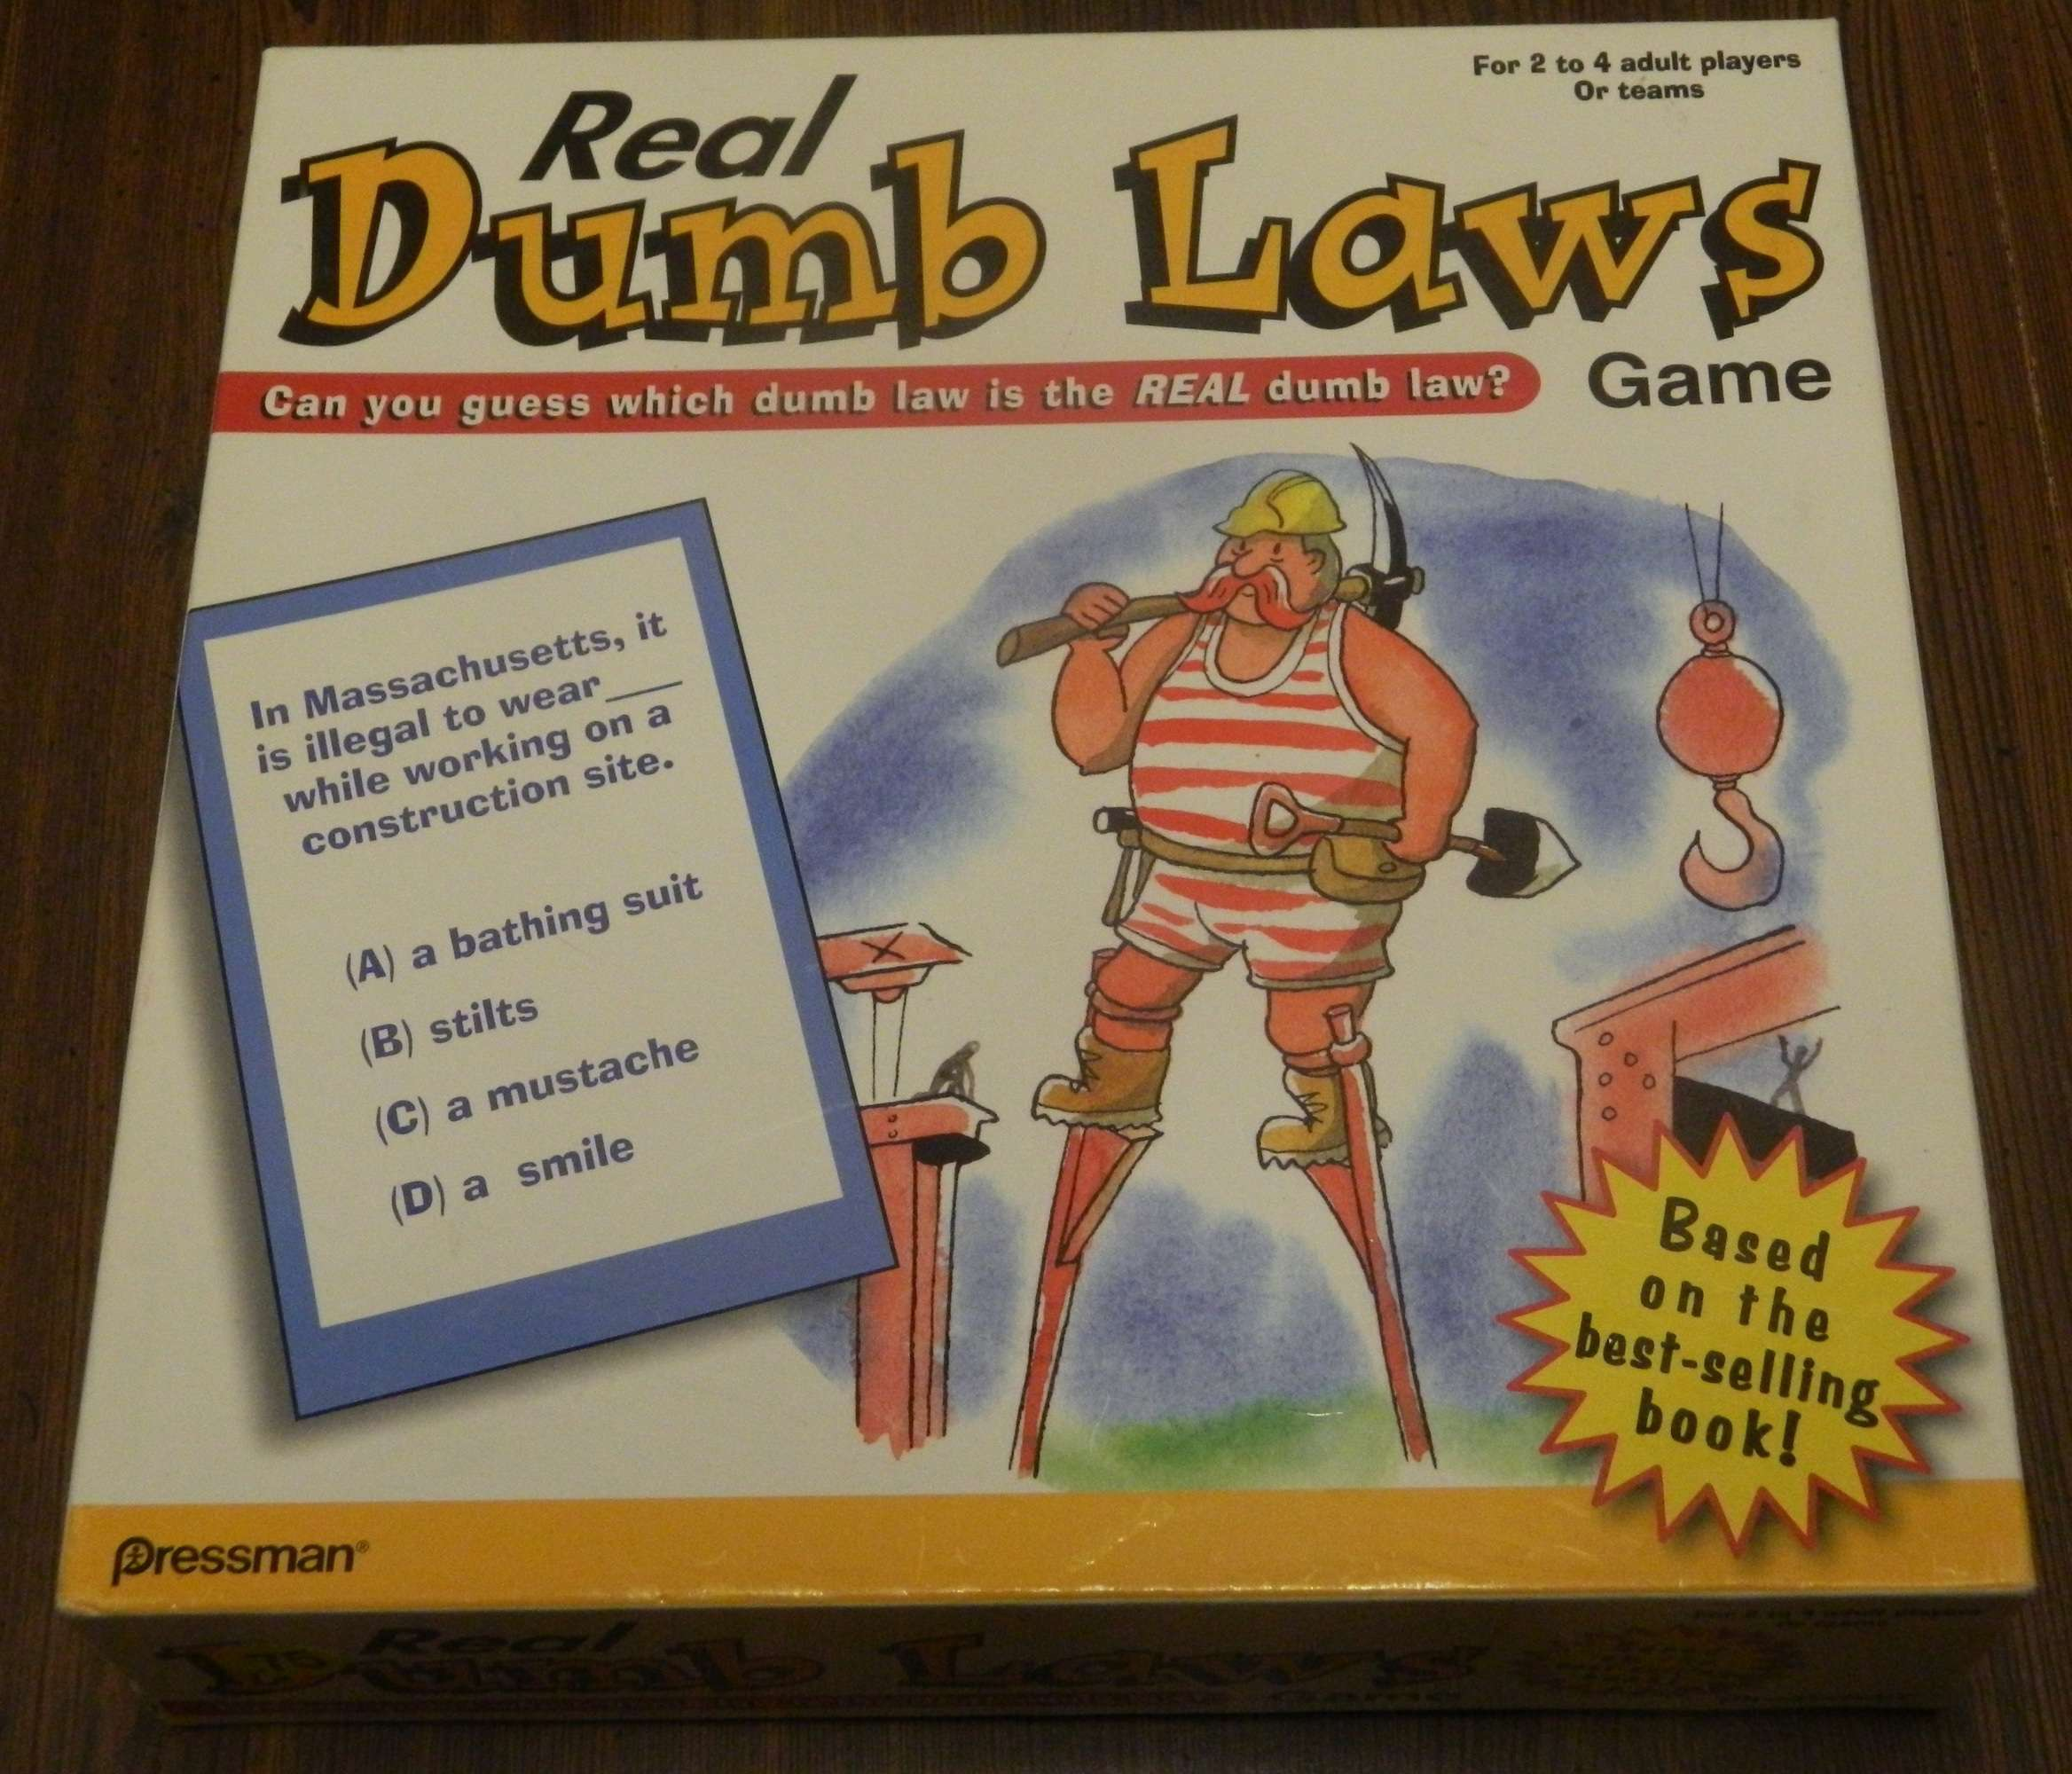 Real Dumb Laws Trivia Game Box